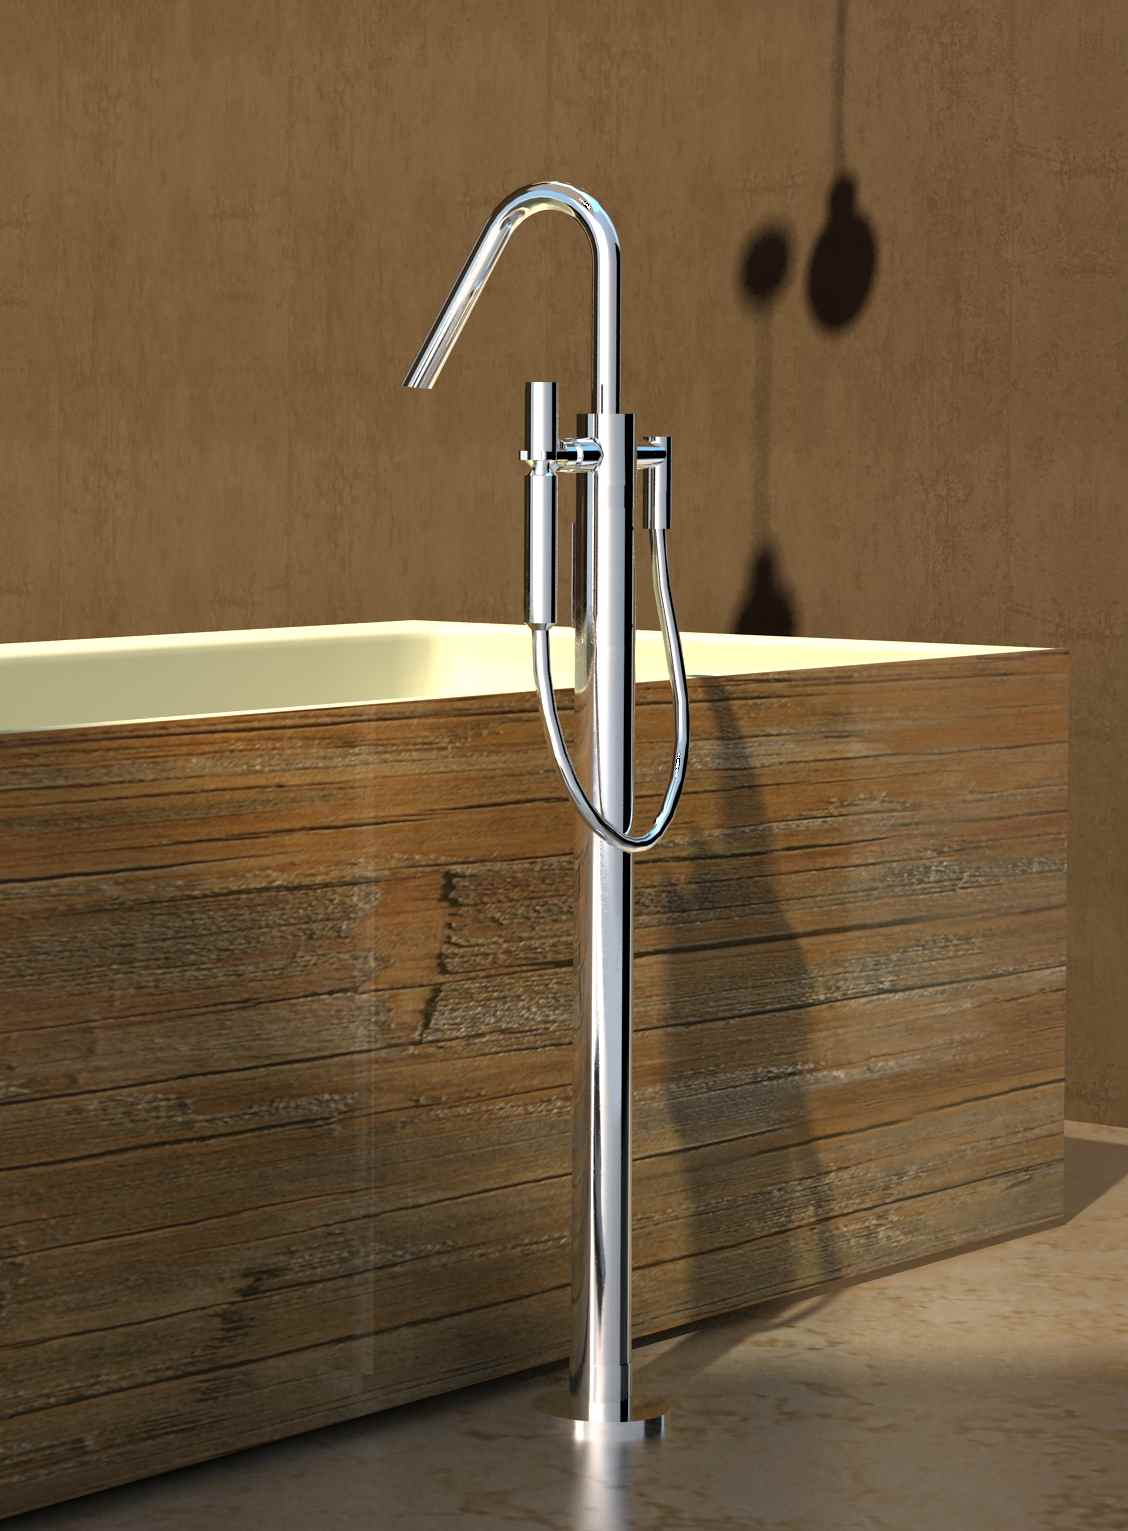 Aquatica Caesar Faucet Floor Mounted Tub Filler Bronze  U003e Source. Aquatica  ...